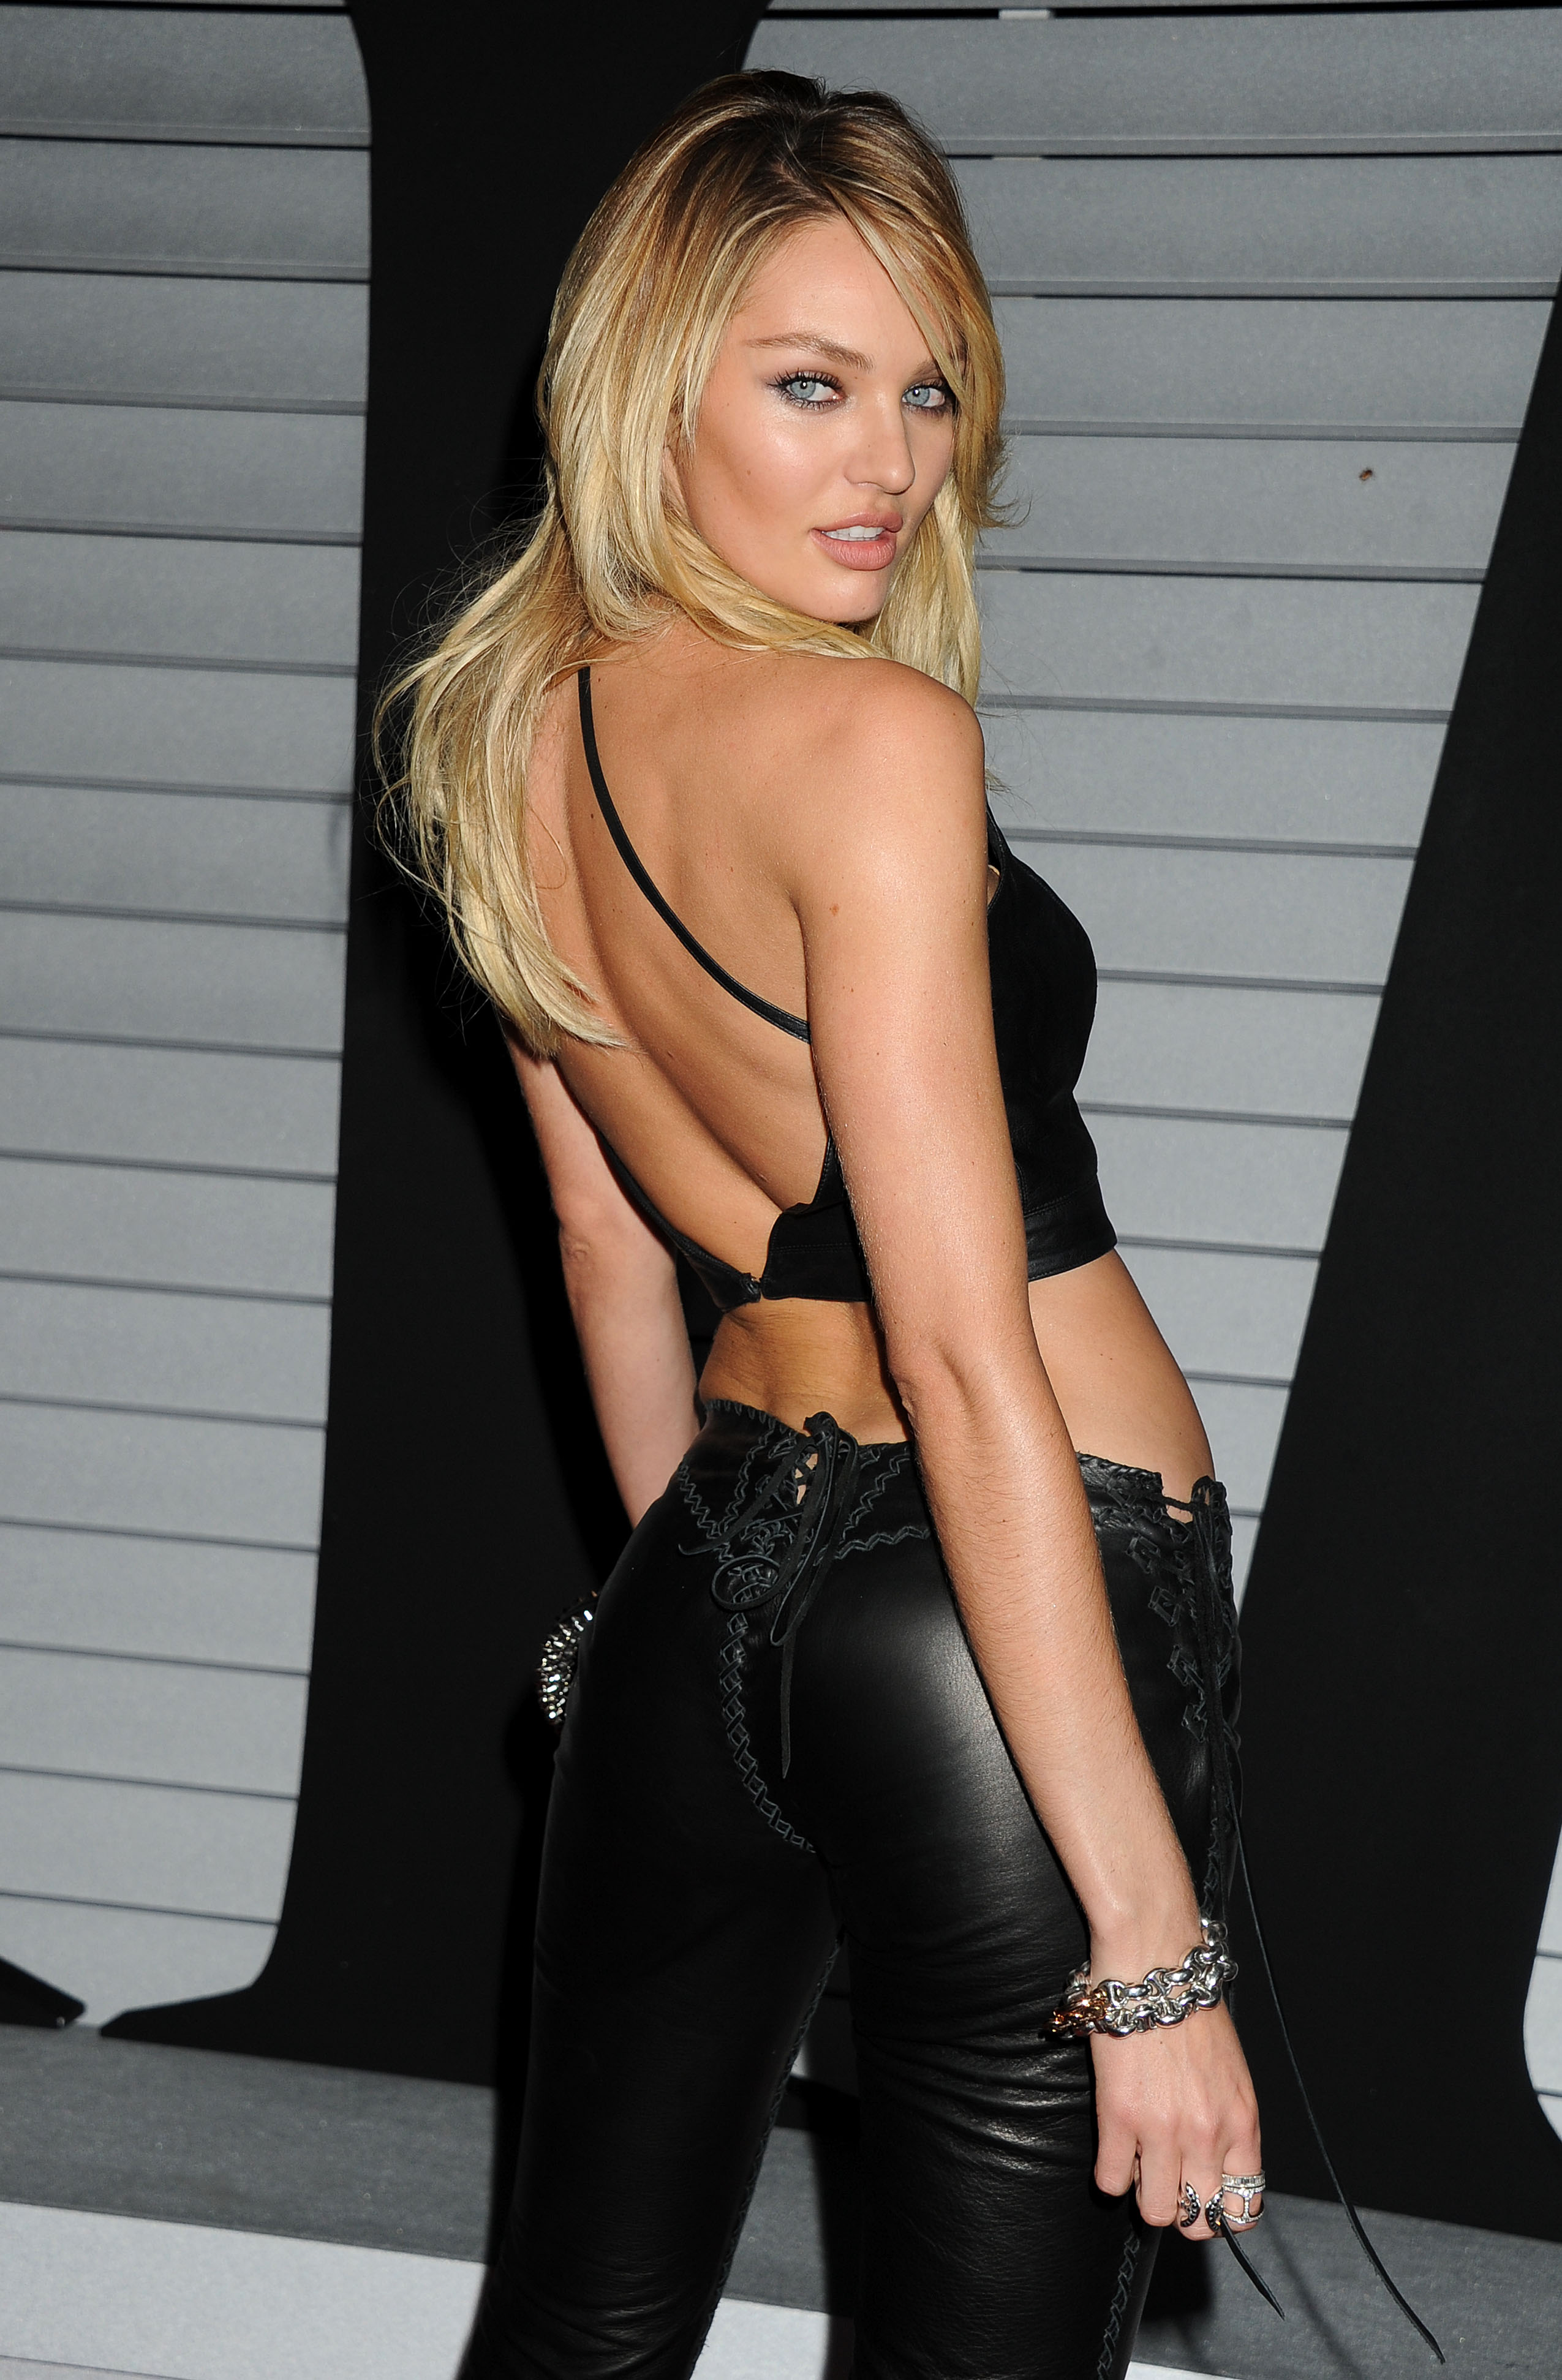 Candice Swanepoel photo #745189